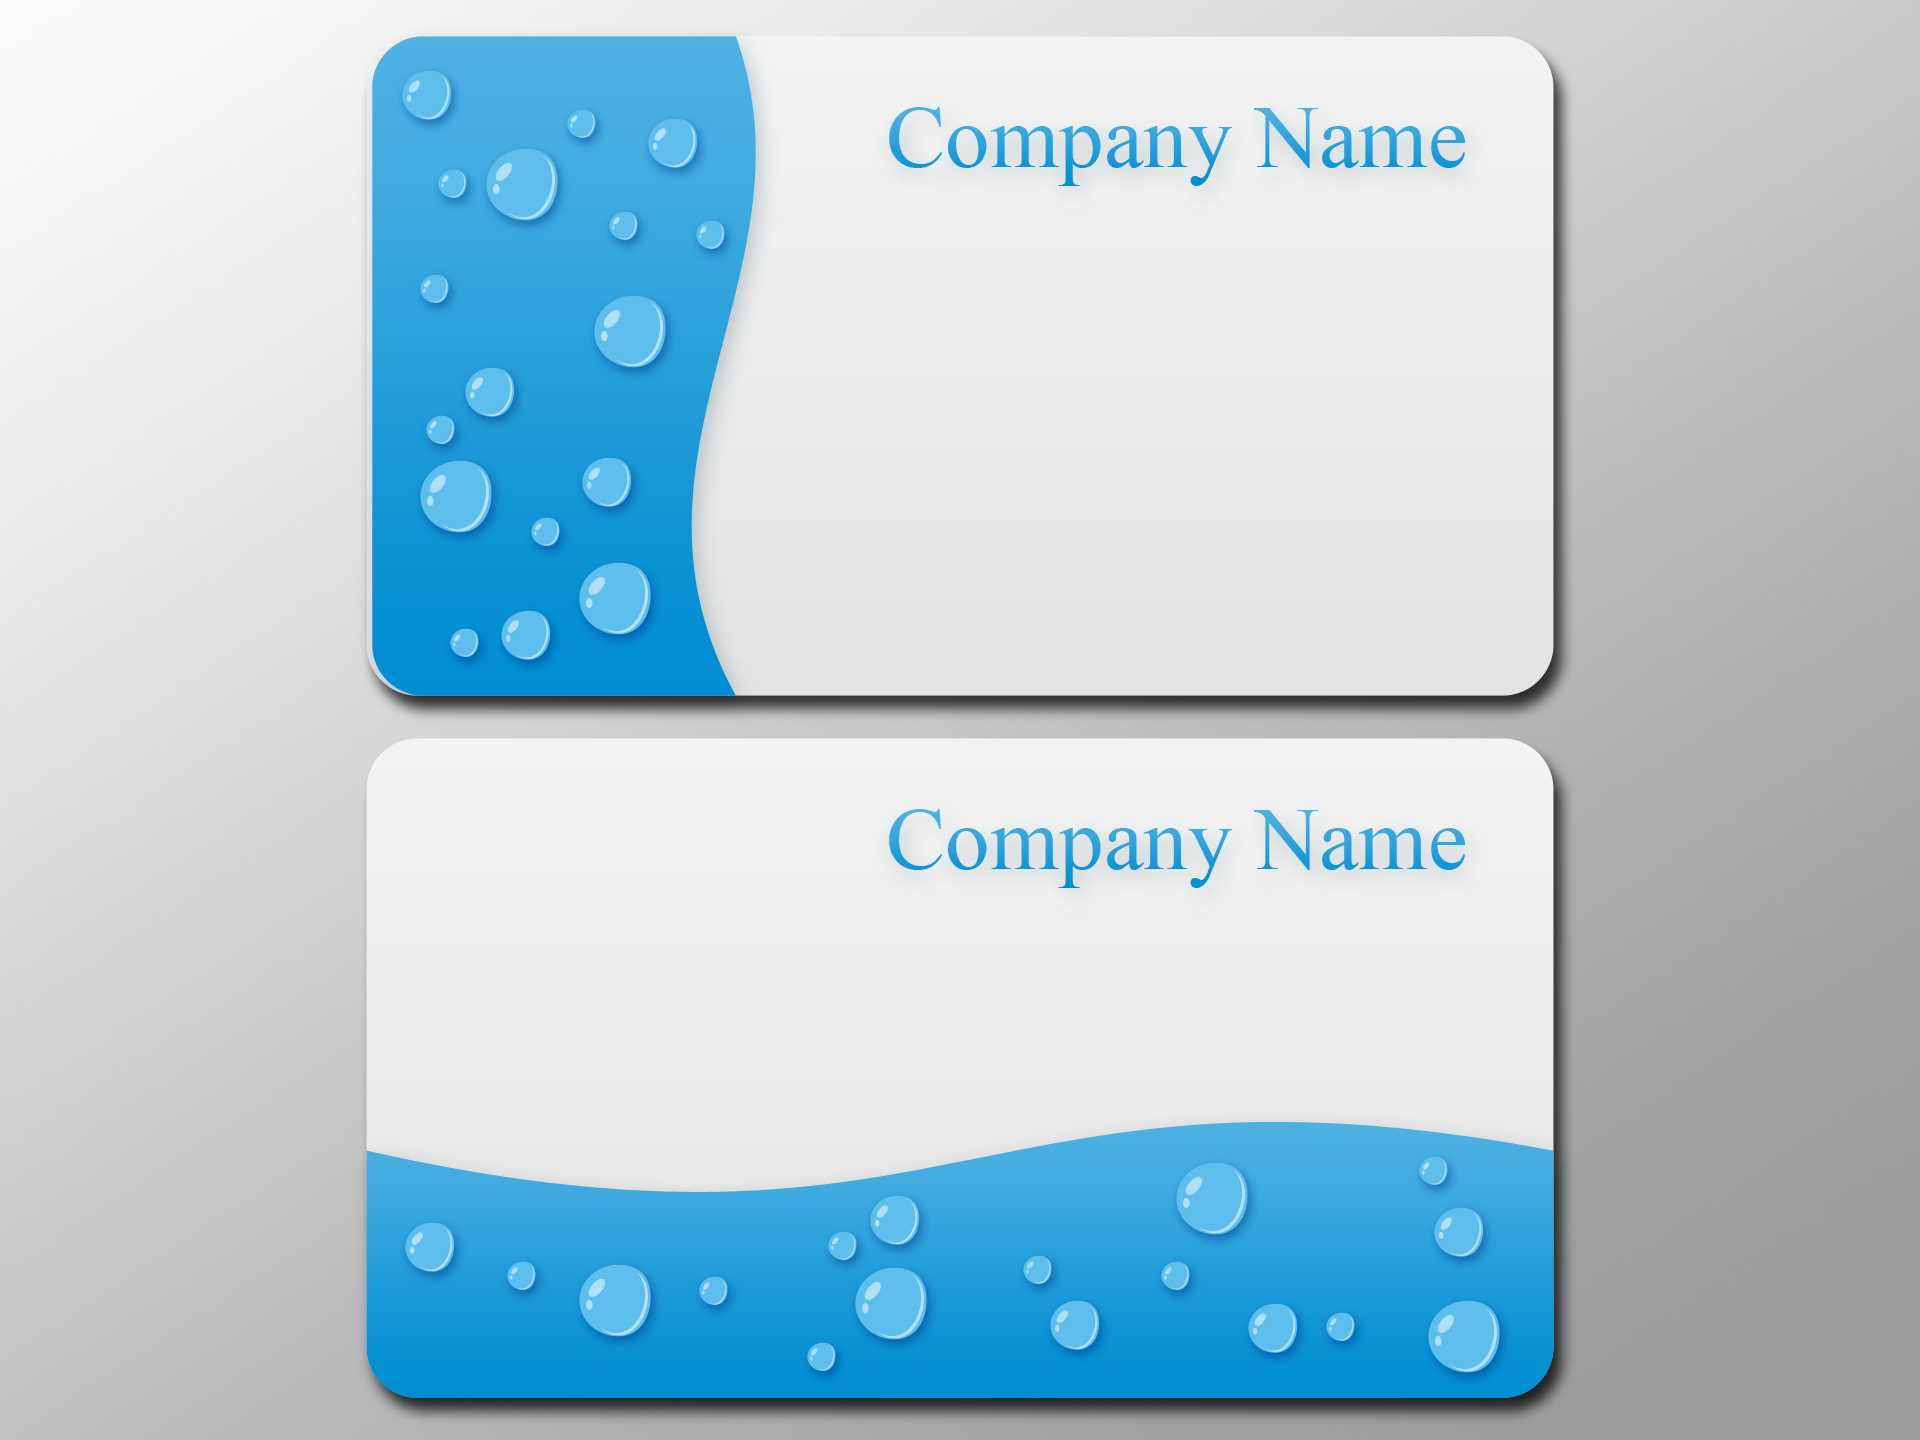 Business Card Template Photoshop – Blank Business Card Throughout Blank Business Card Template Photoshop